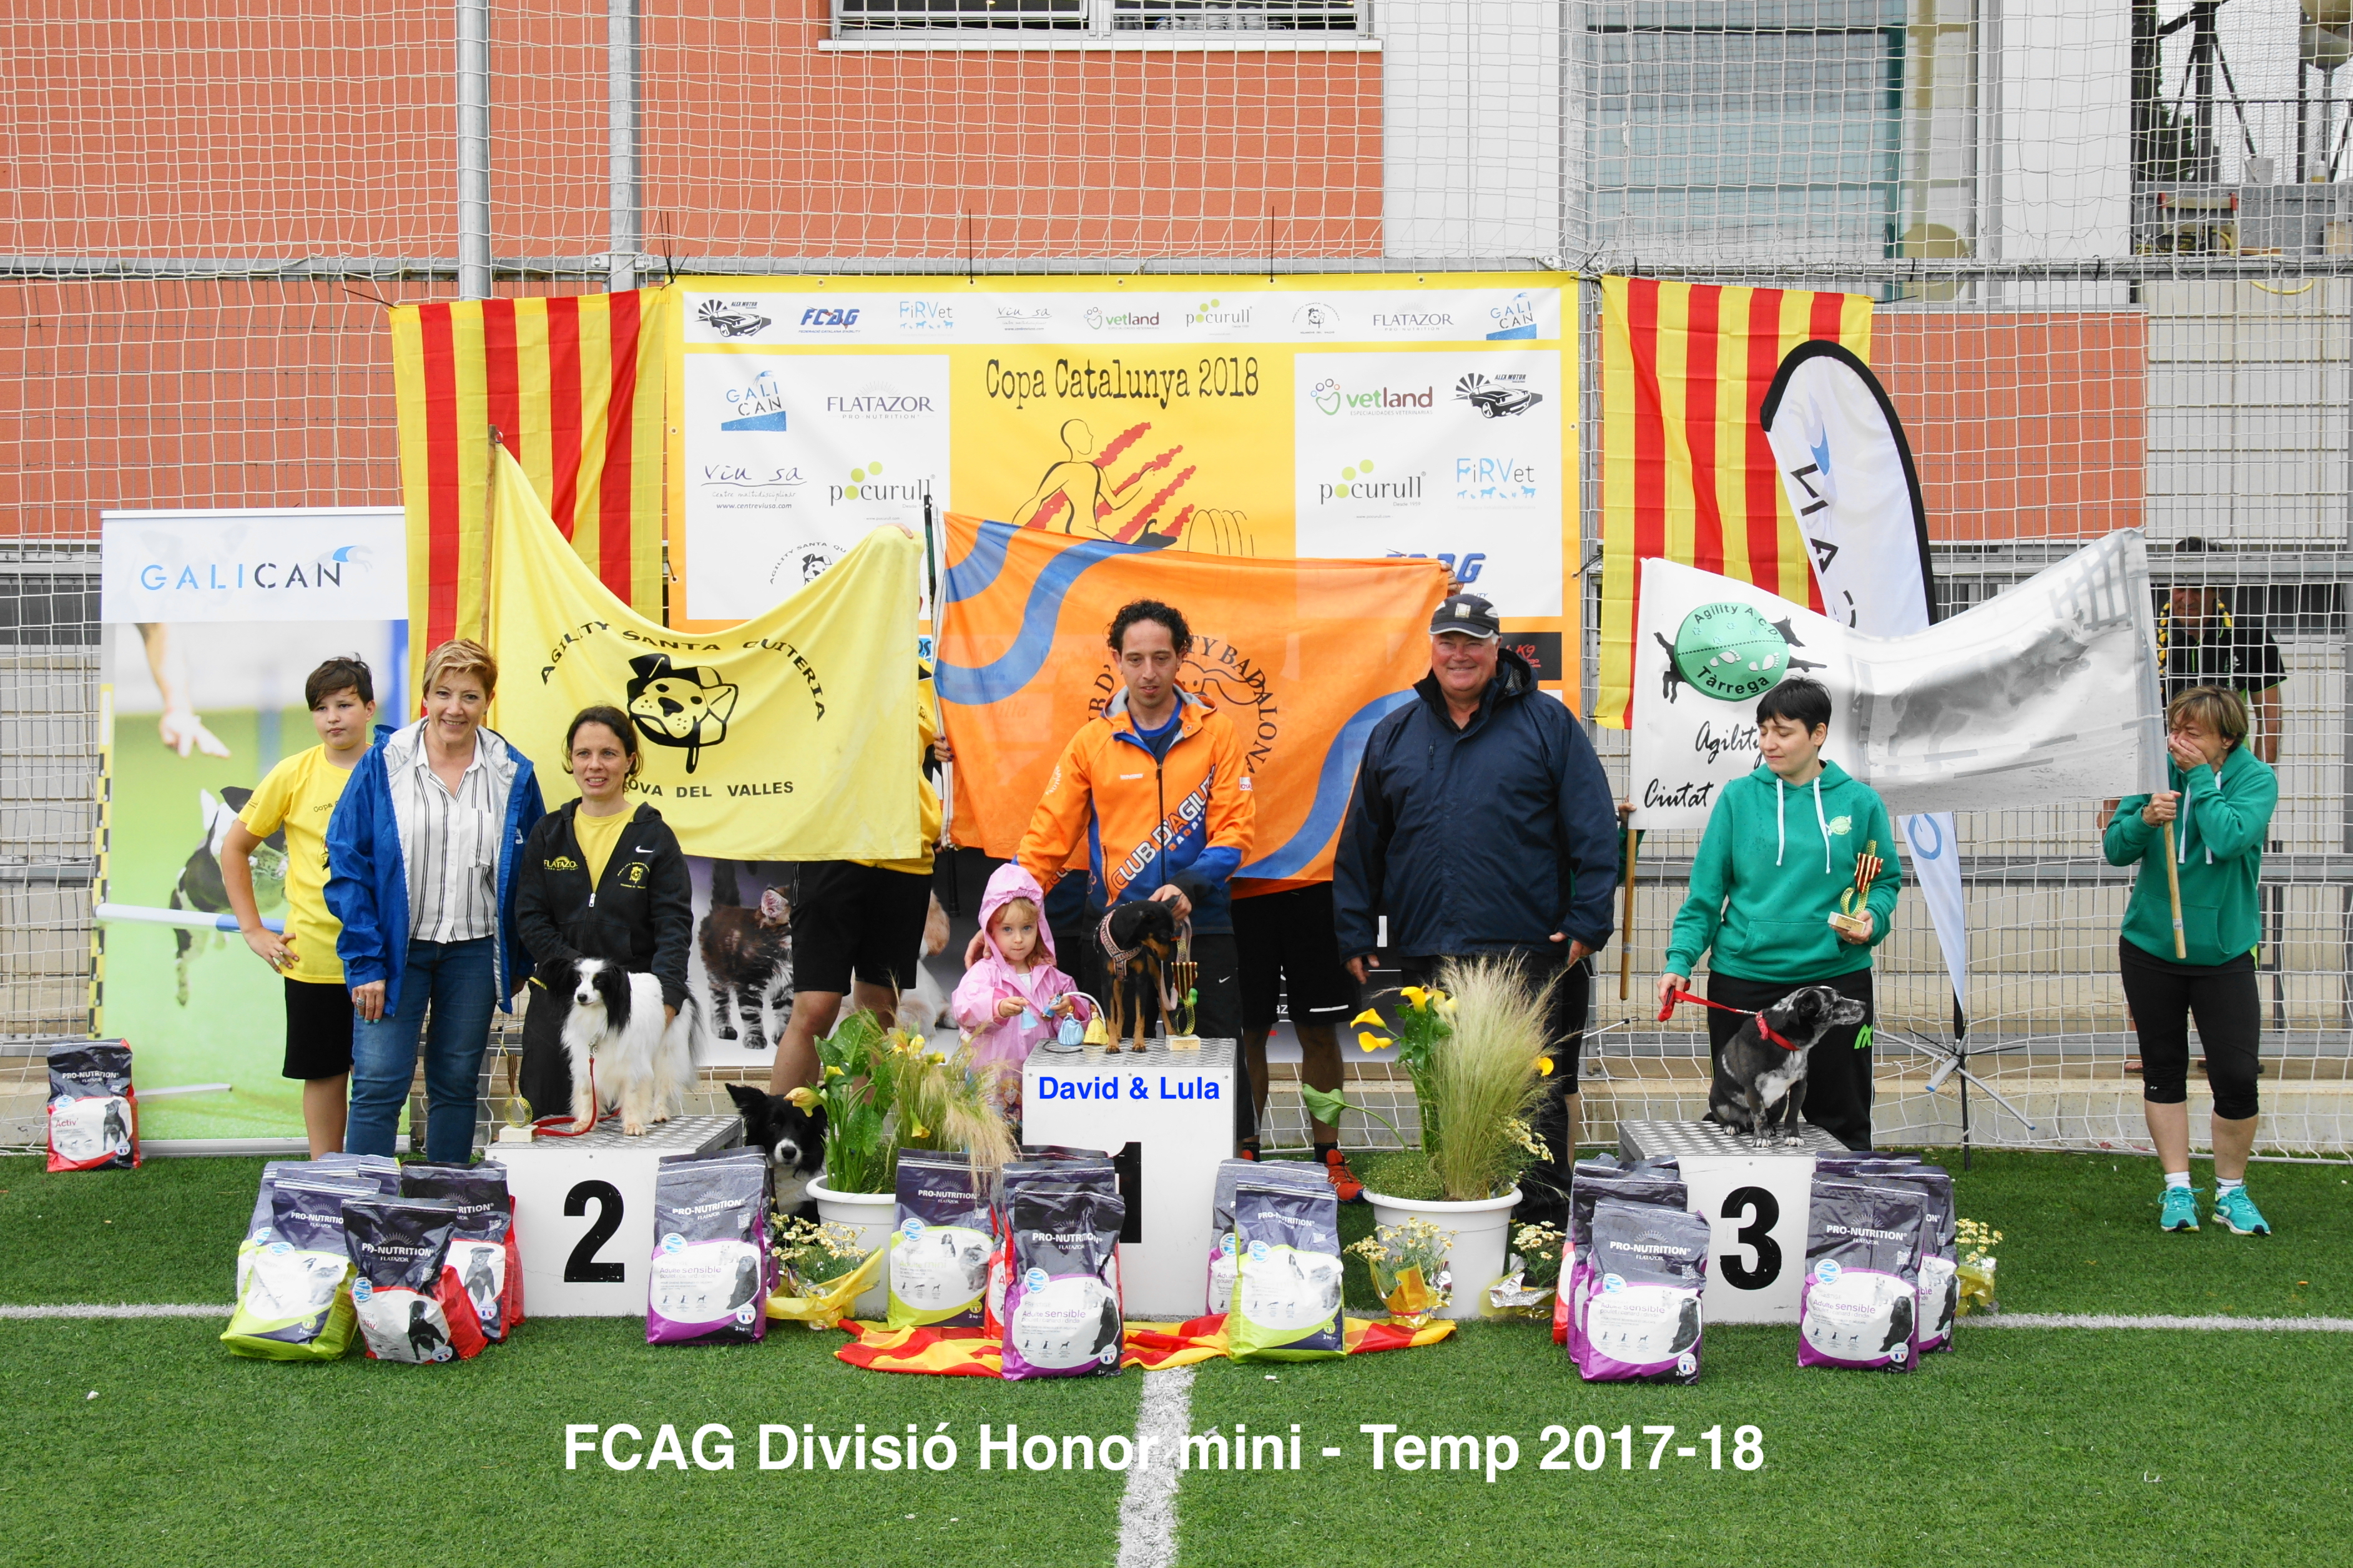 FCAG Liga Catalana Temp 2017-18 - División Honor Mini